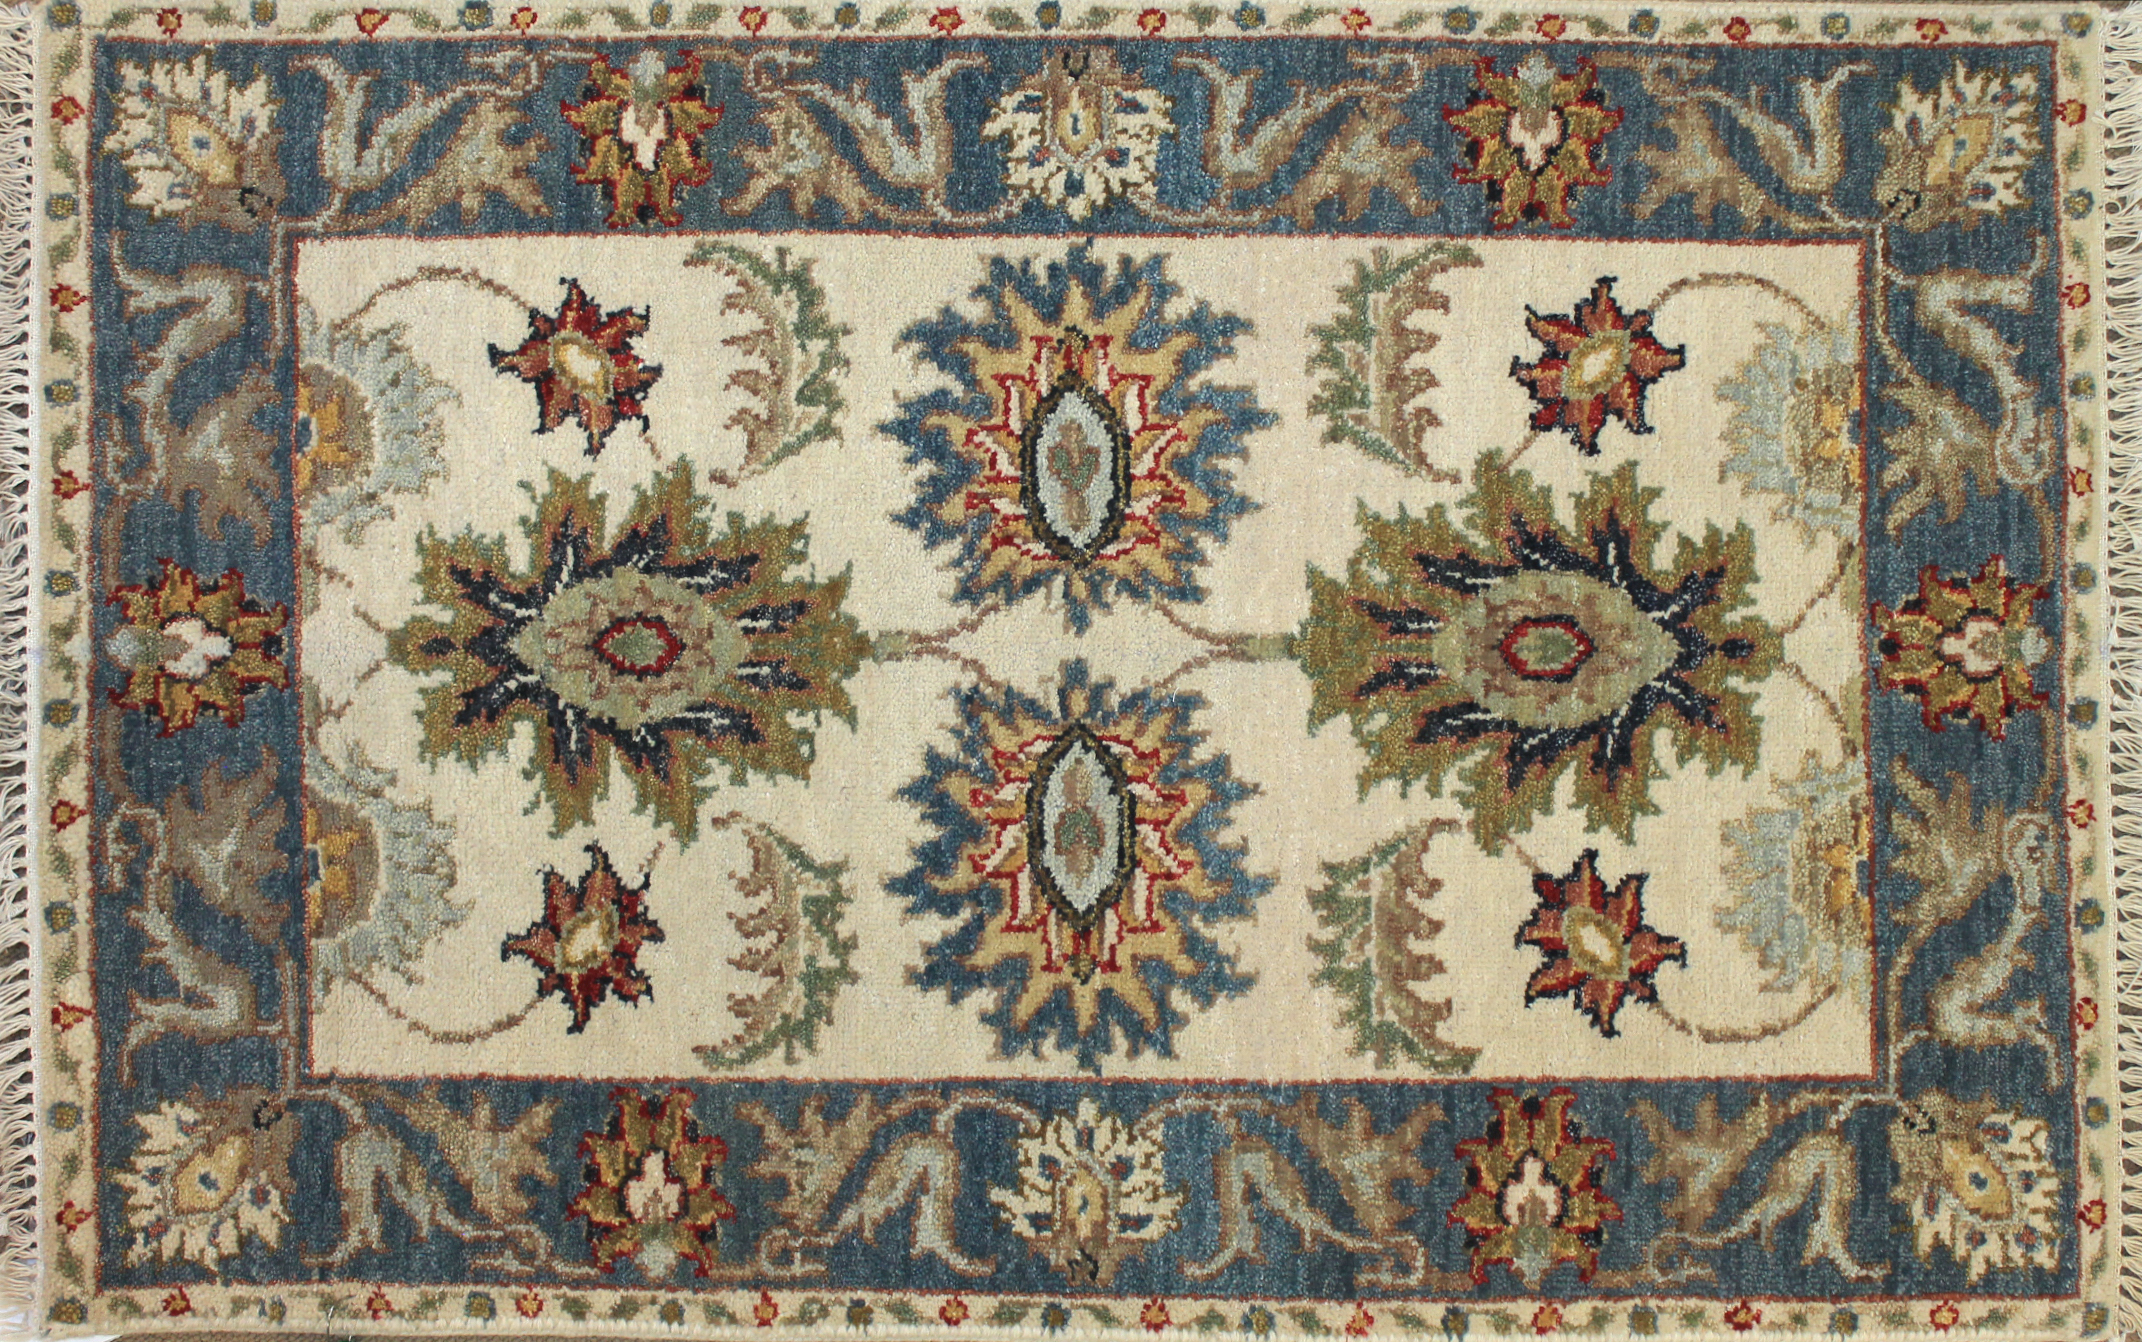 2X3 Oriental Hand Knotted Wool Area Rug - MR025537